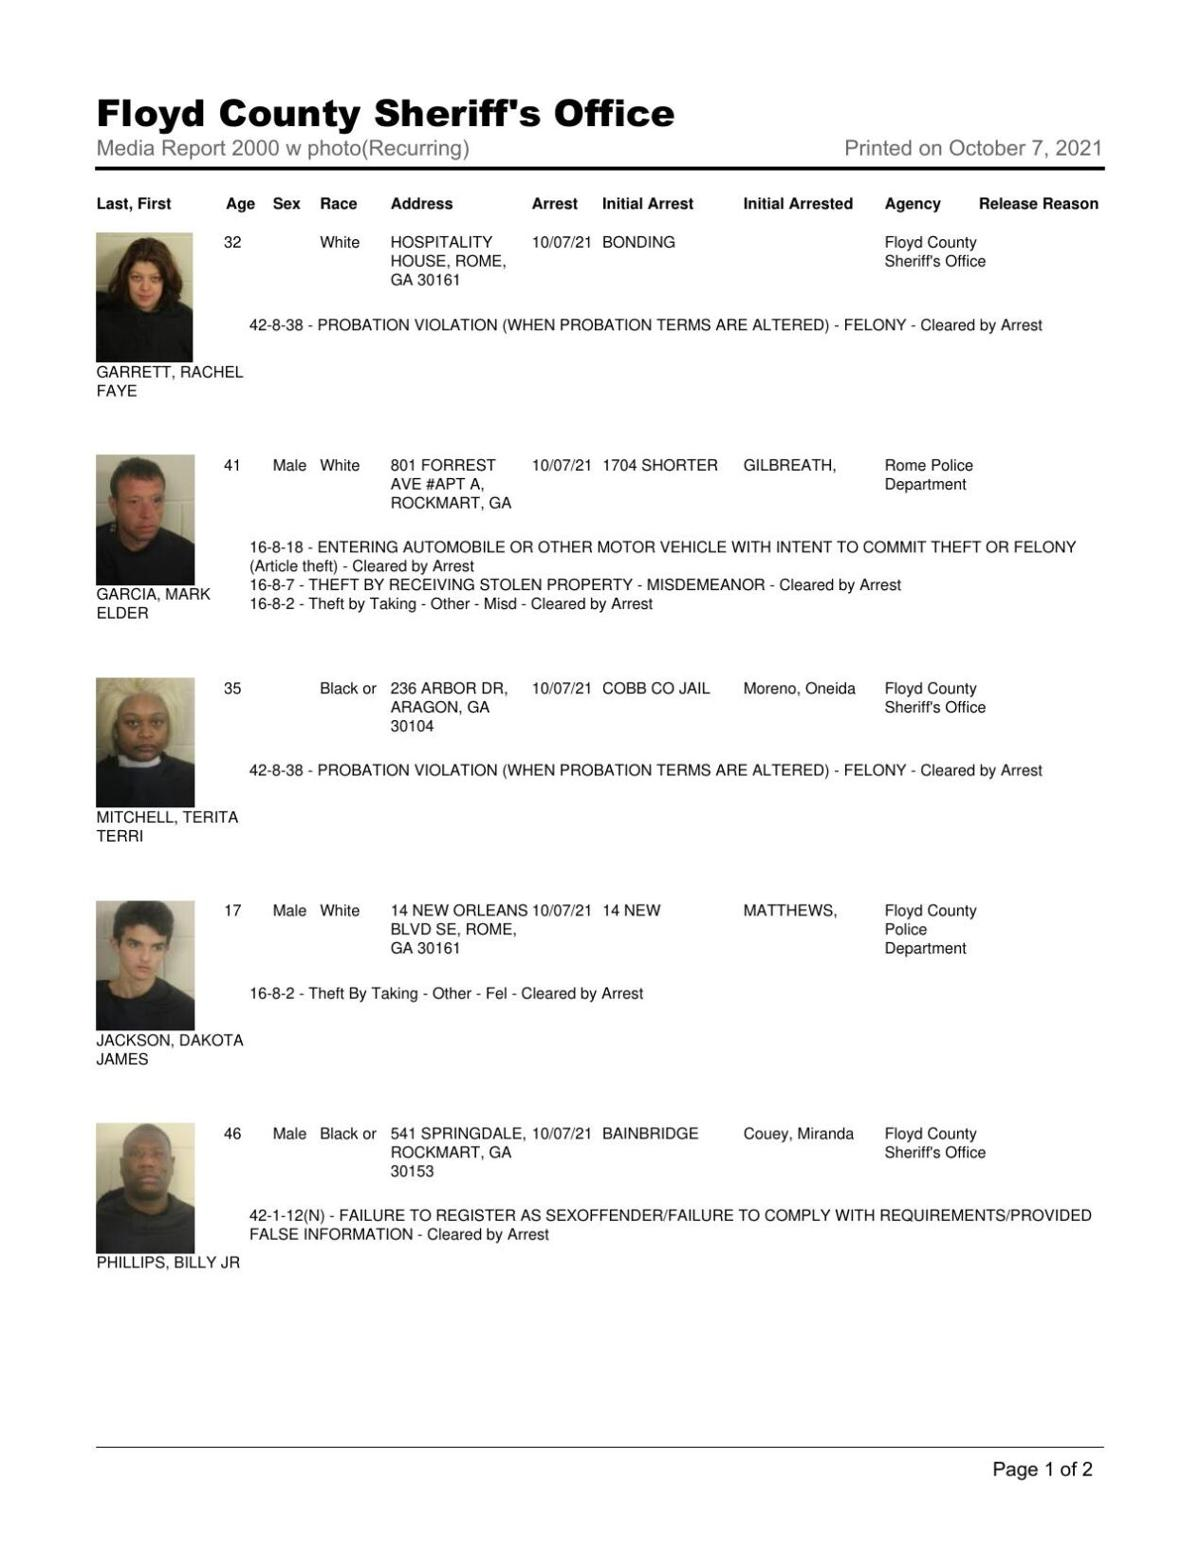 Floyd County Jail report for 8 pm Thursday, Oct. 7